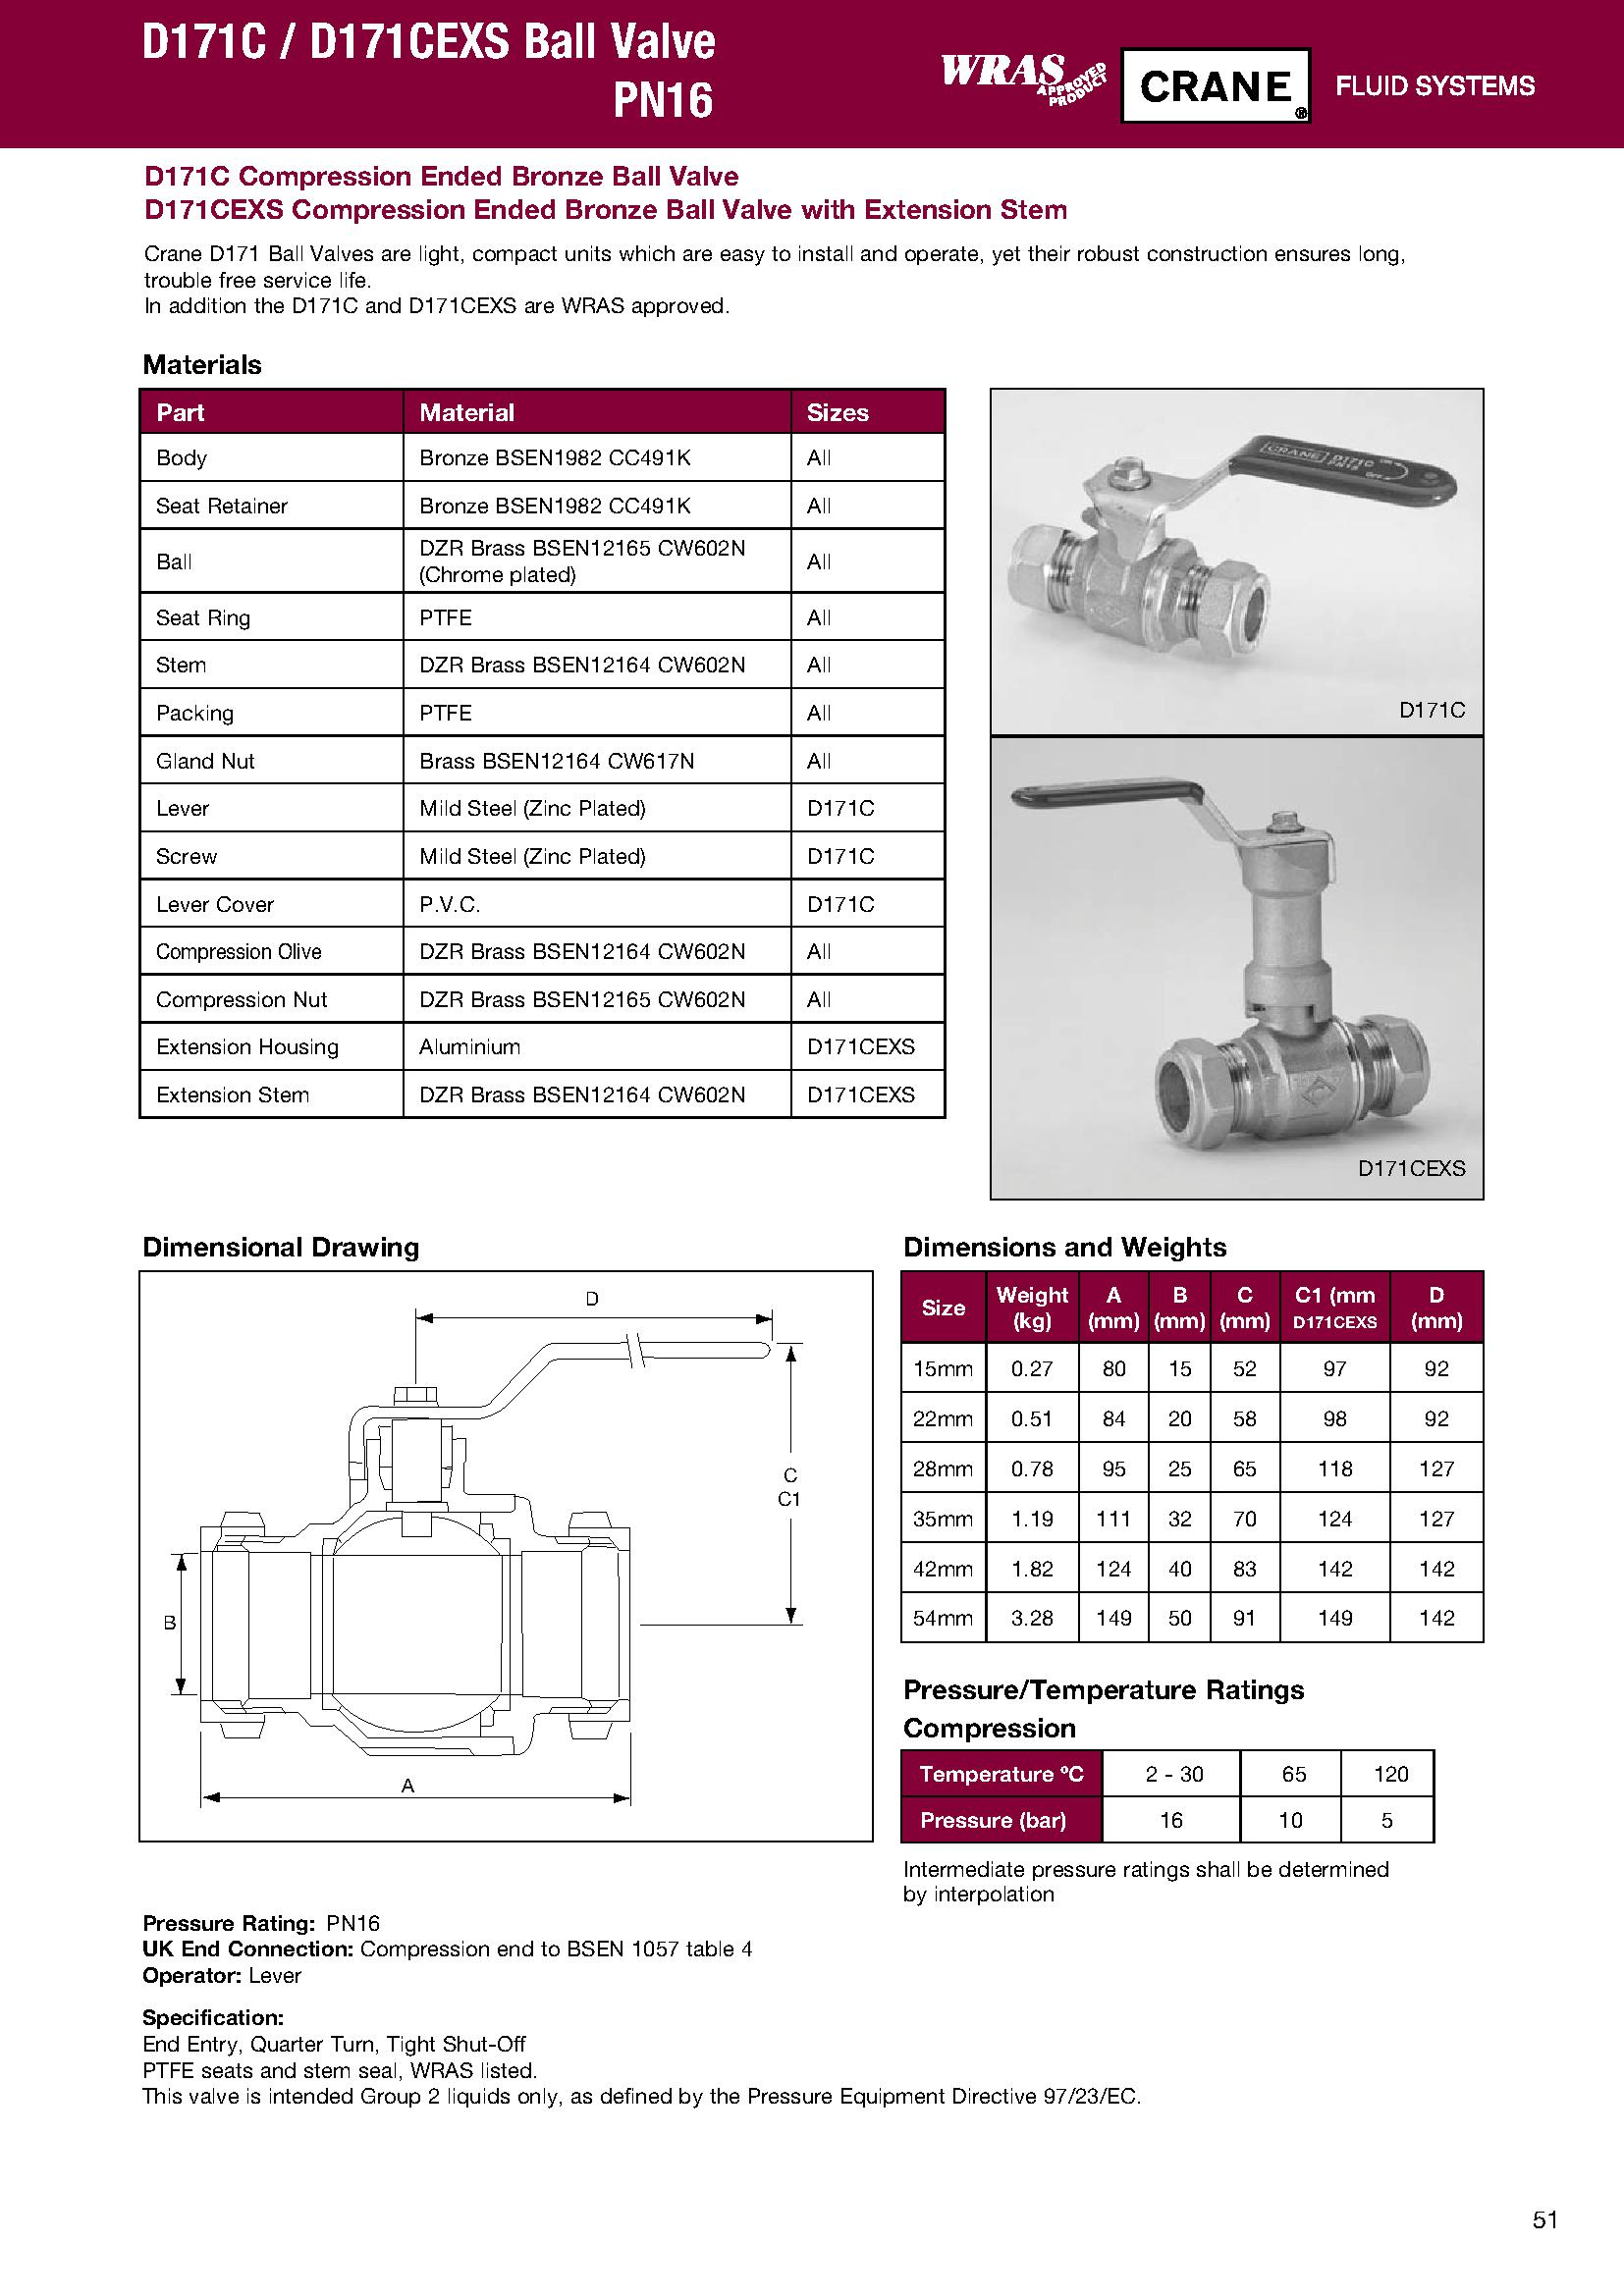 Crane D171C 28mm Comp Ball Valve PDF